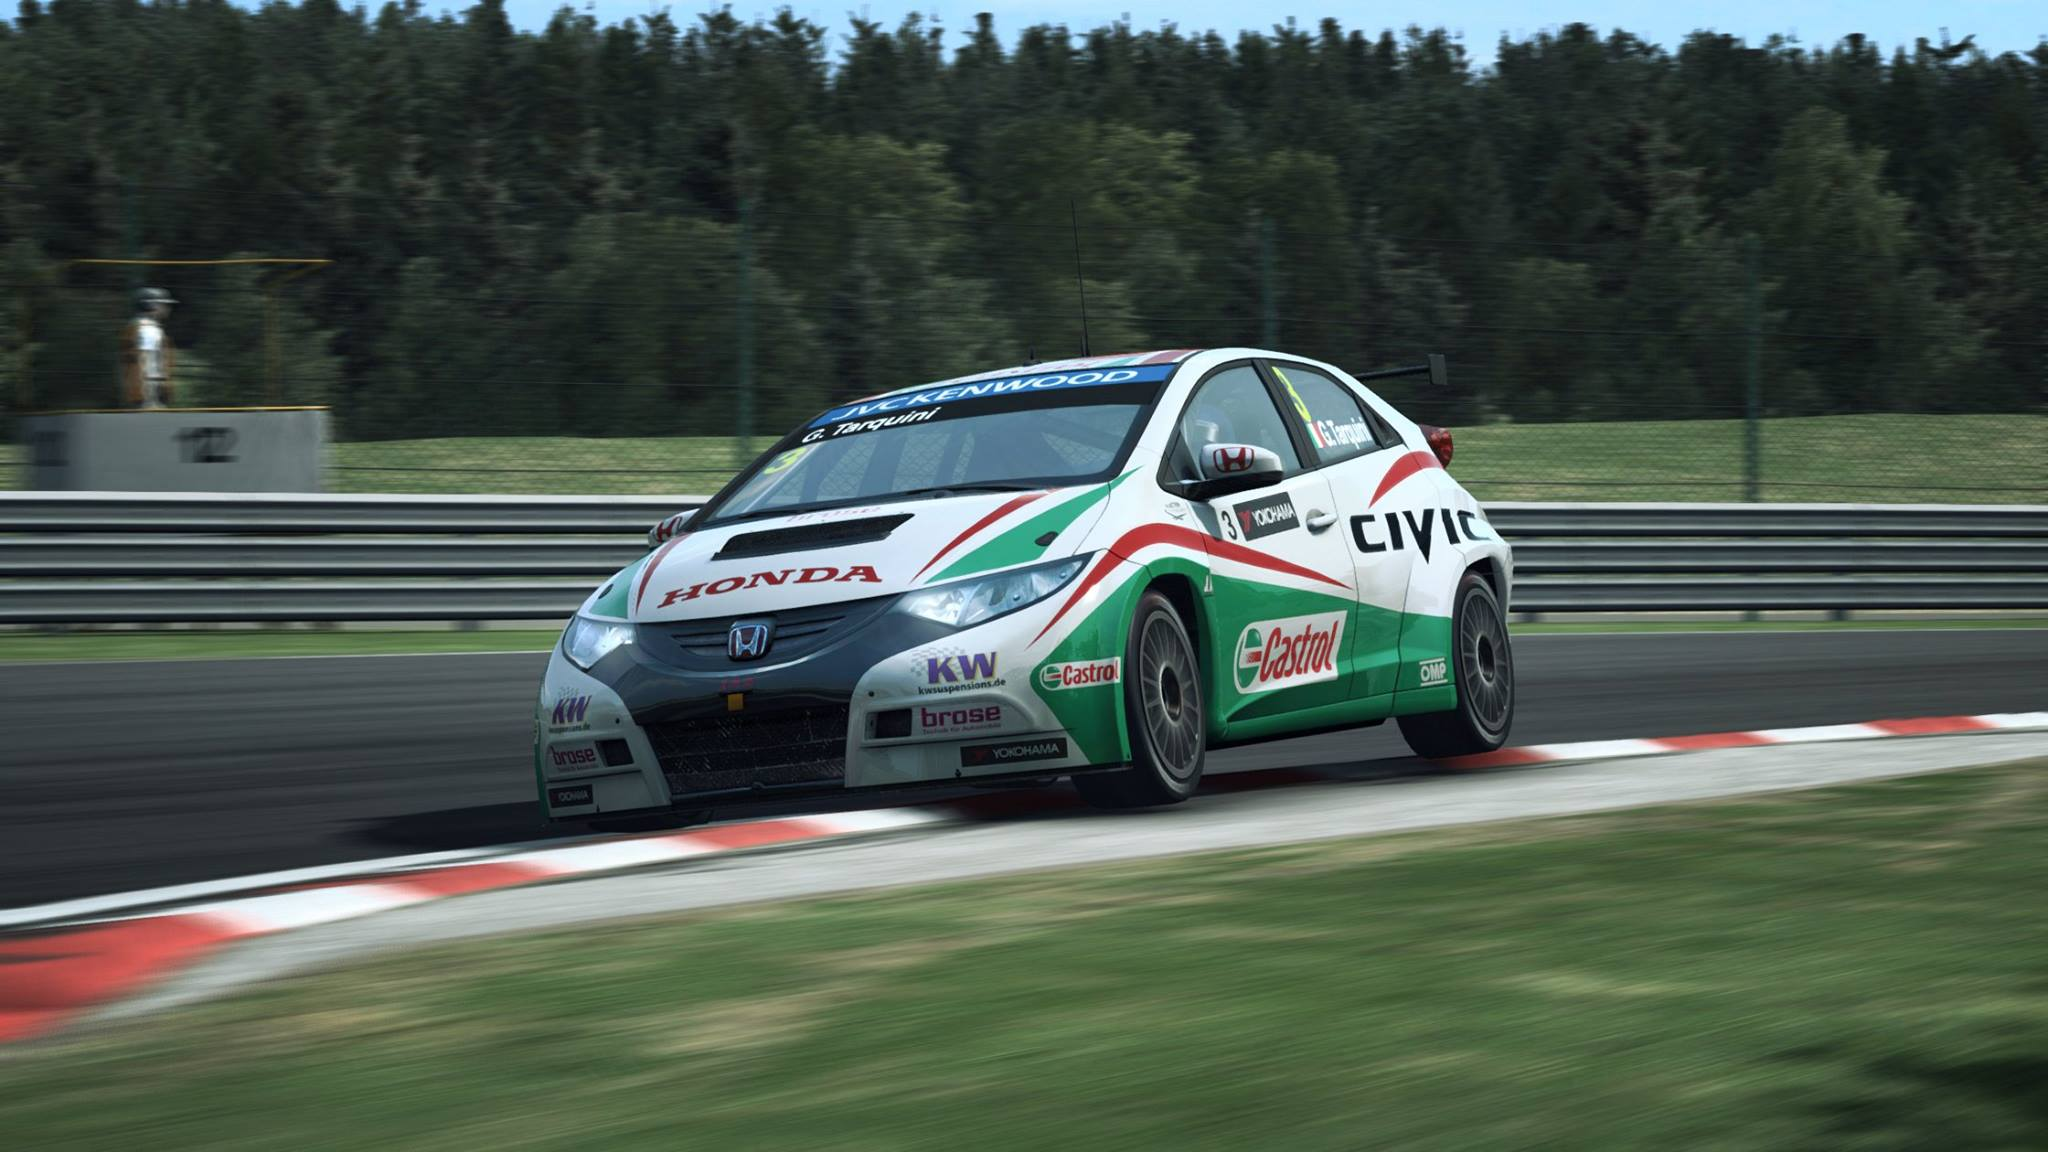 RaceRoom Racing Experience, free download. RaceRoom Racing Experience 1.0.0.1: RaceRoom Racing Experience is a racing simulator game for Microsoft Windows, developed by Sector3 Studios. The game offers different game modes such as Multiplayer Races, Custom Championships, Single Races, Practice, Leaderboard Challenges …